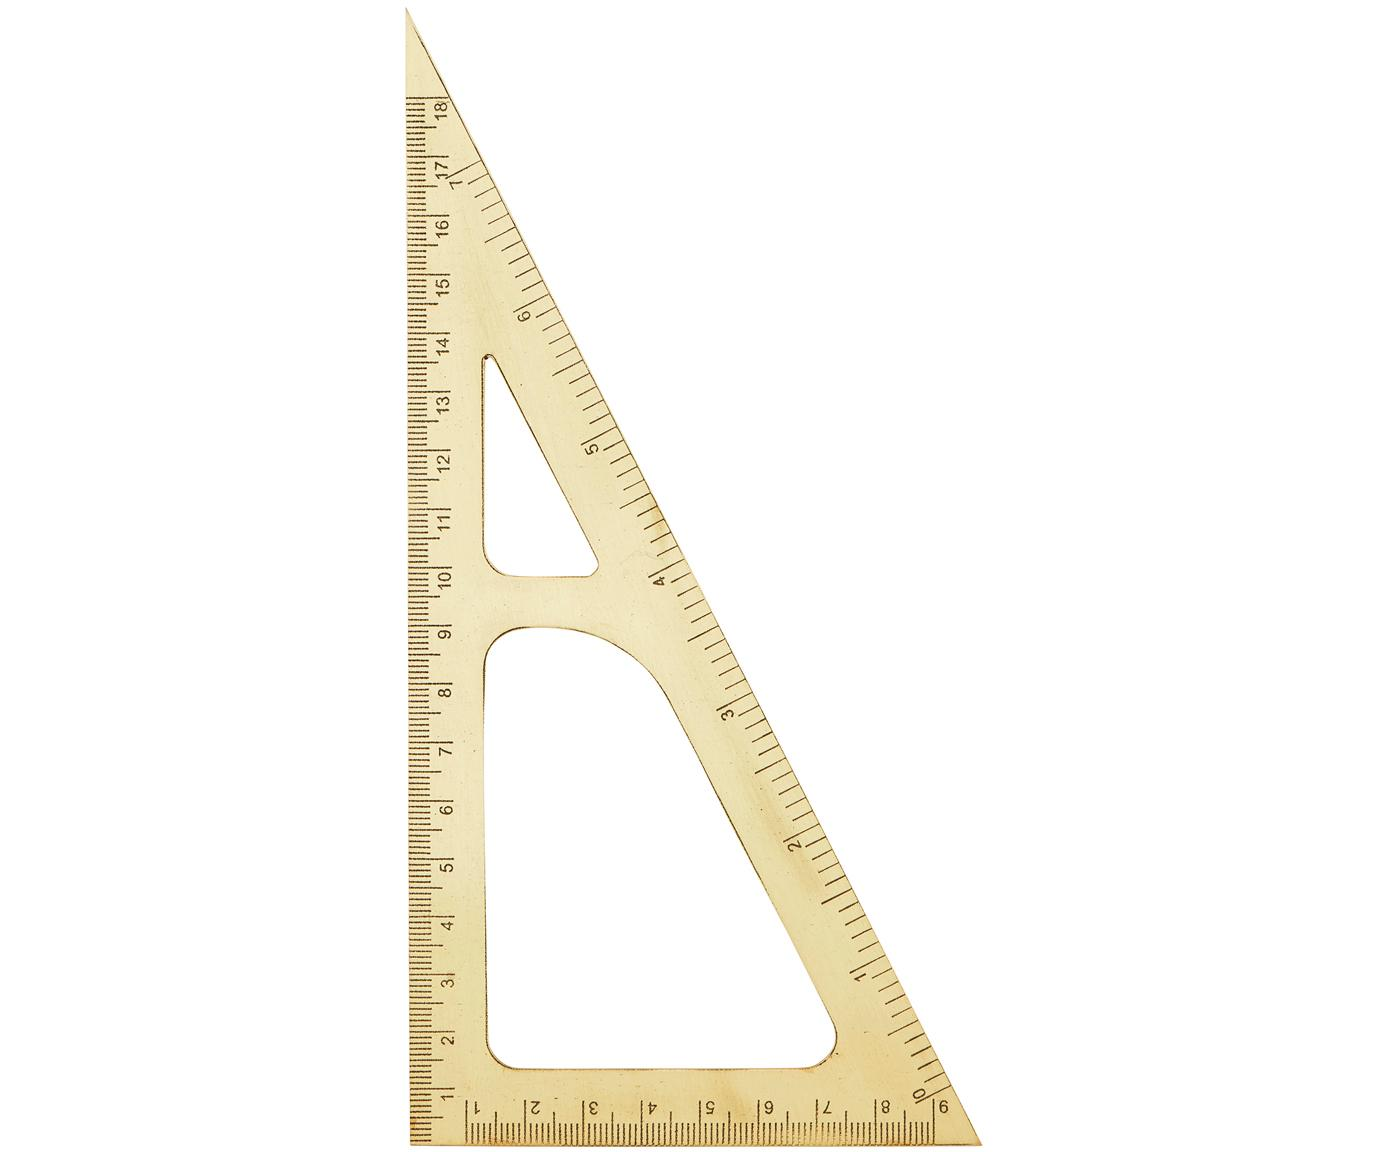 Righello Ruler, Ottone, Ottone, L 19 cm